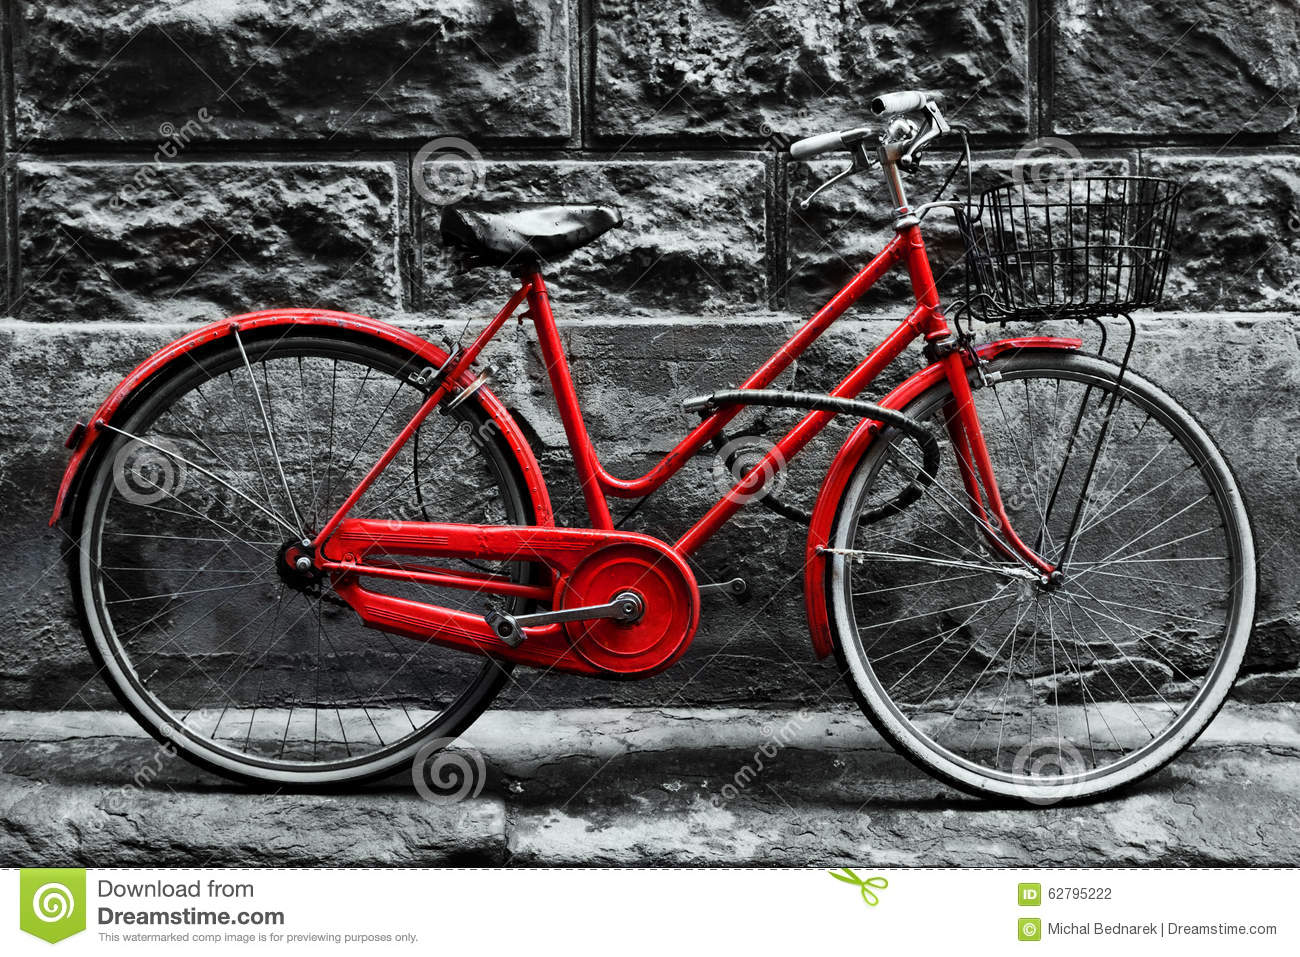 ee14534bc51 Retro Vintage Red Bike On Black And White Wall. Stock Photo - Image ...